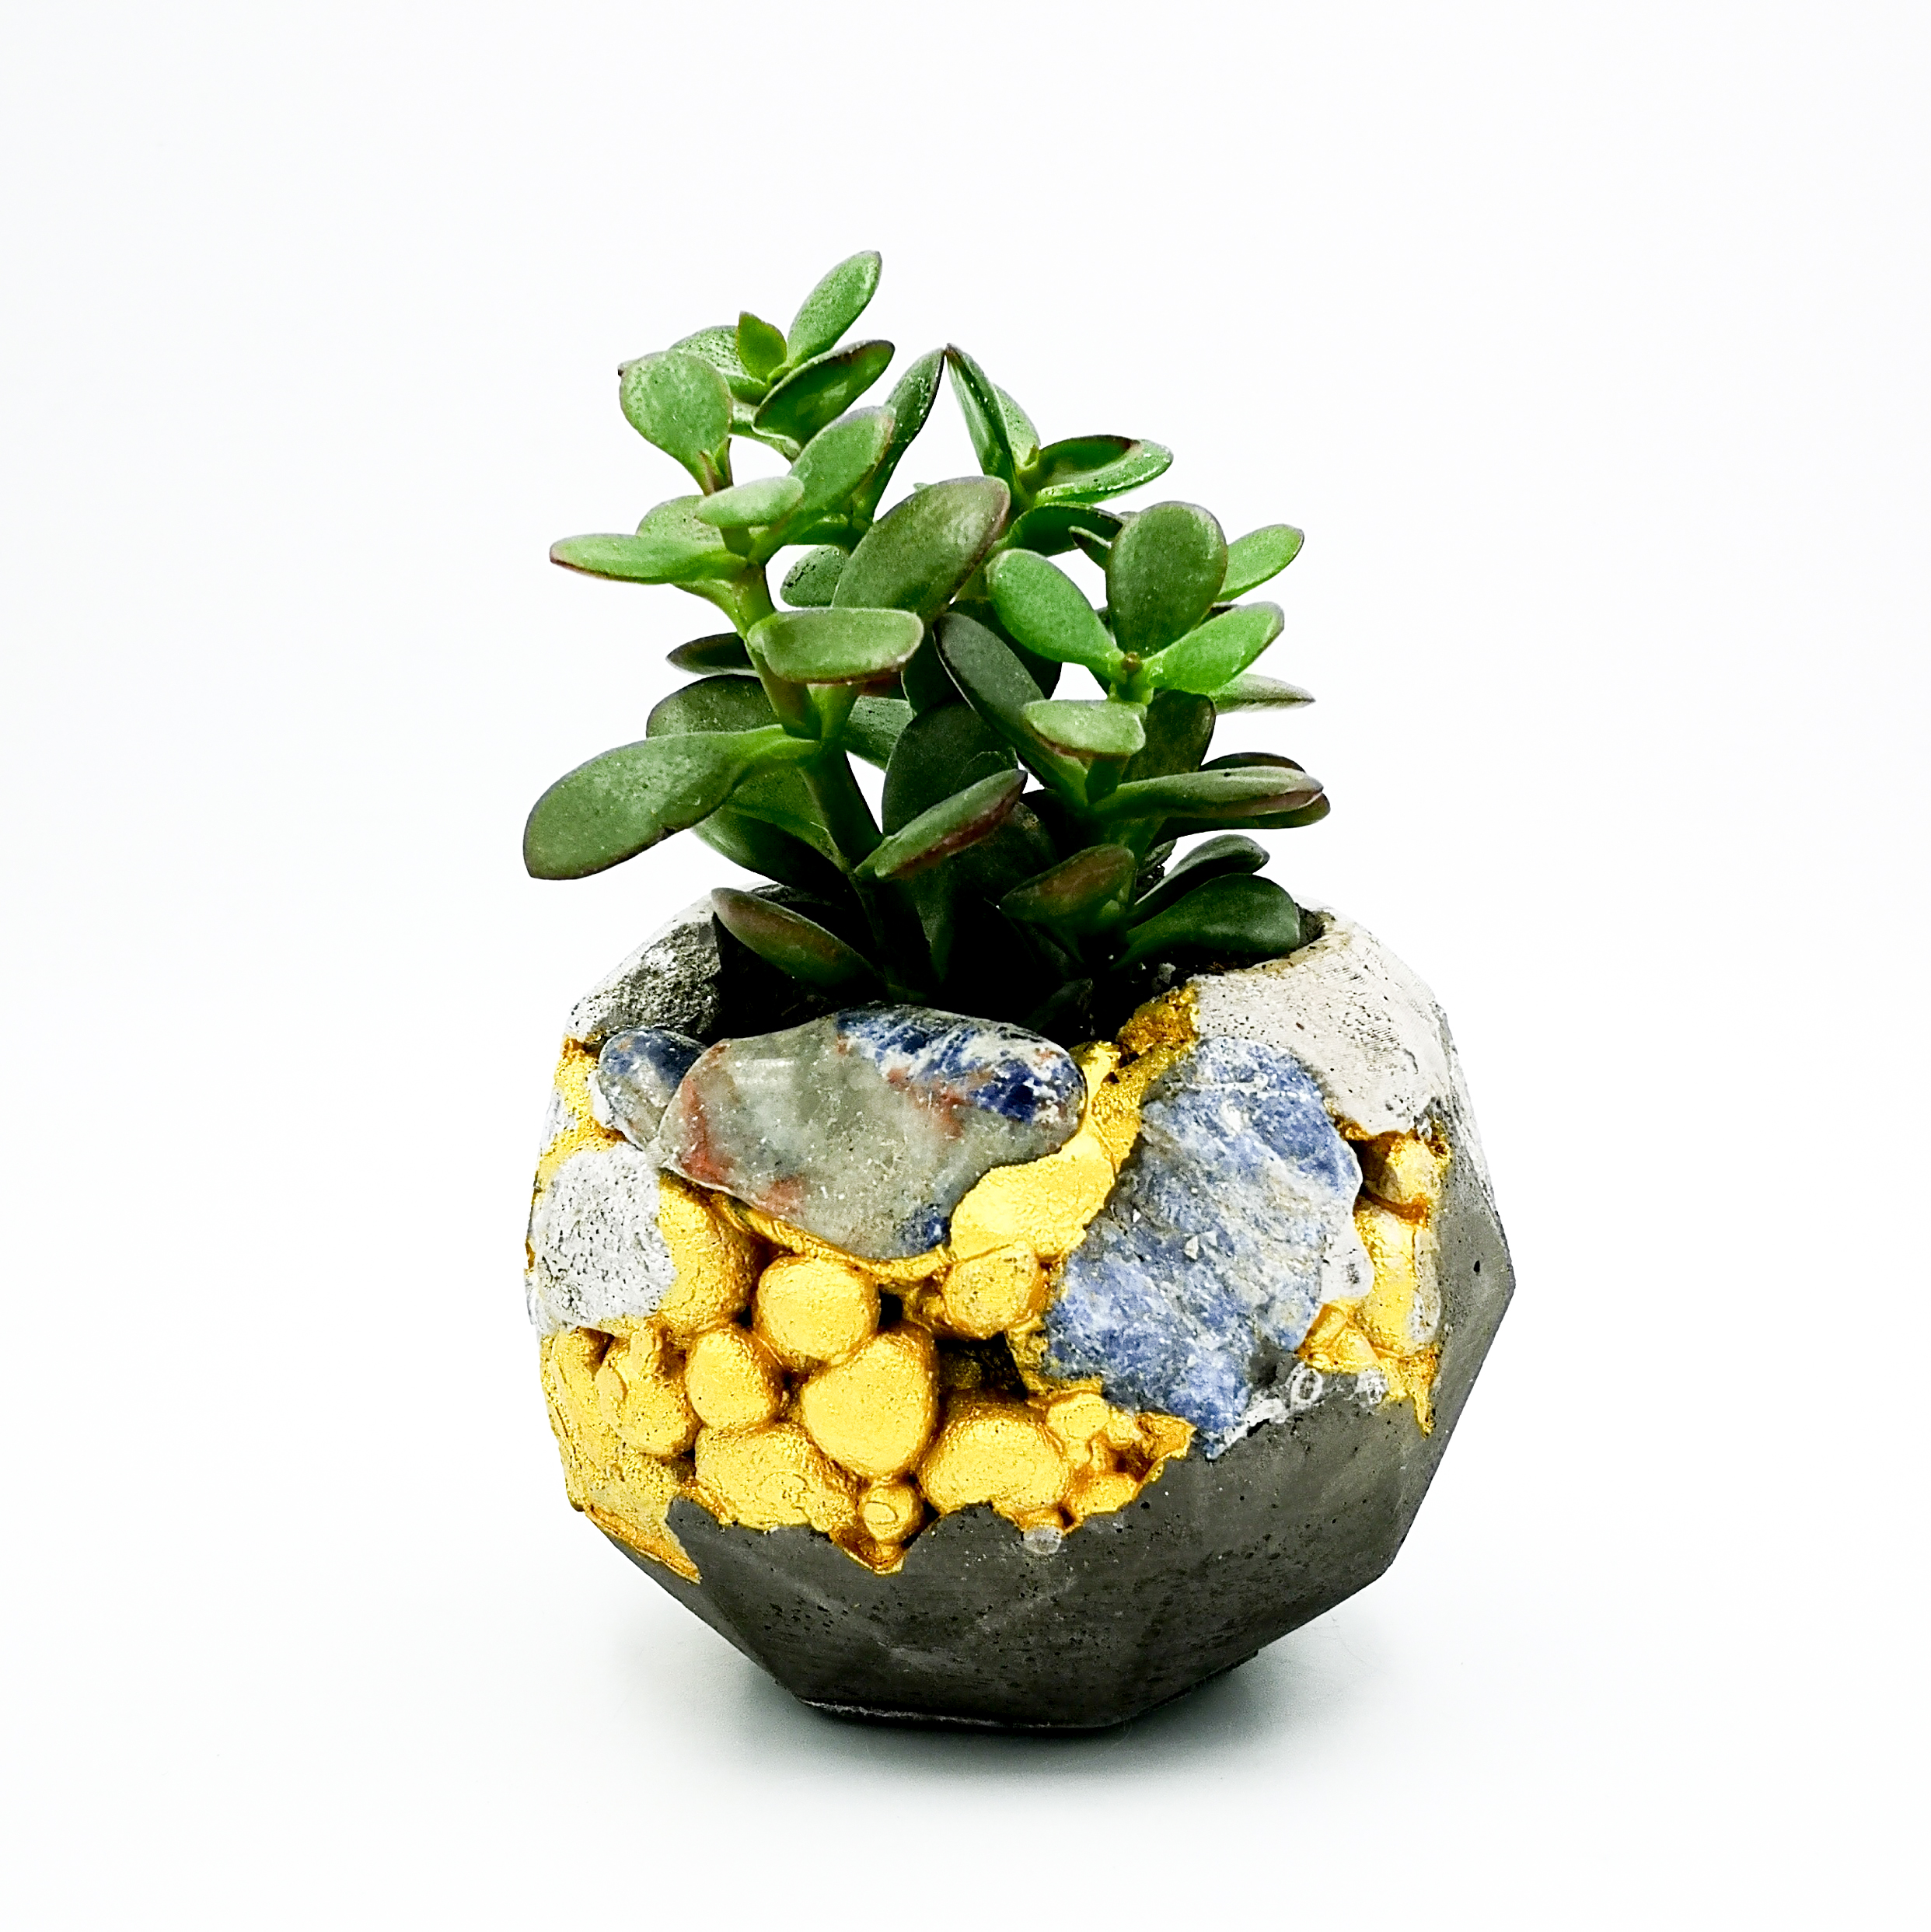 Planter Pot Roma Via Madrione kintsugi, grey and black color with mineral stones and gold structure, octogonal shape handmade in Berlin by Kula.